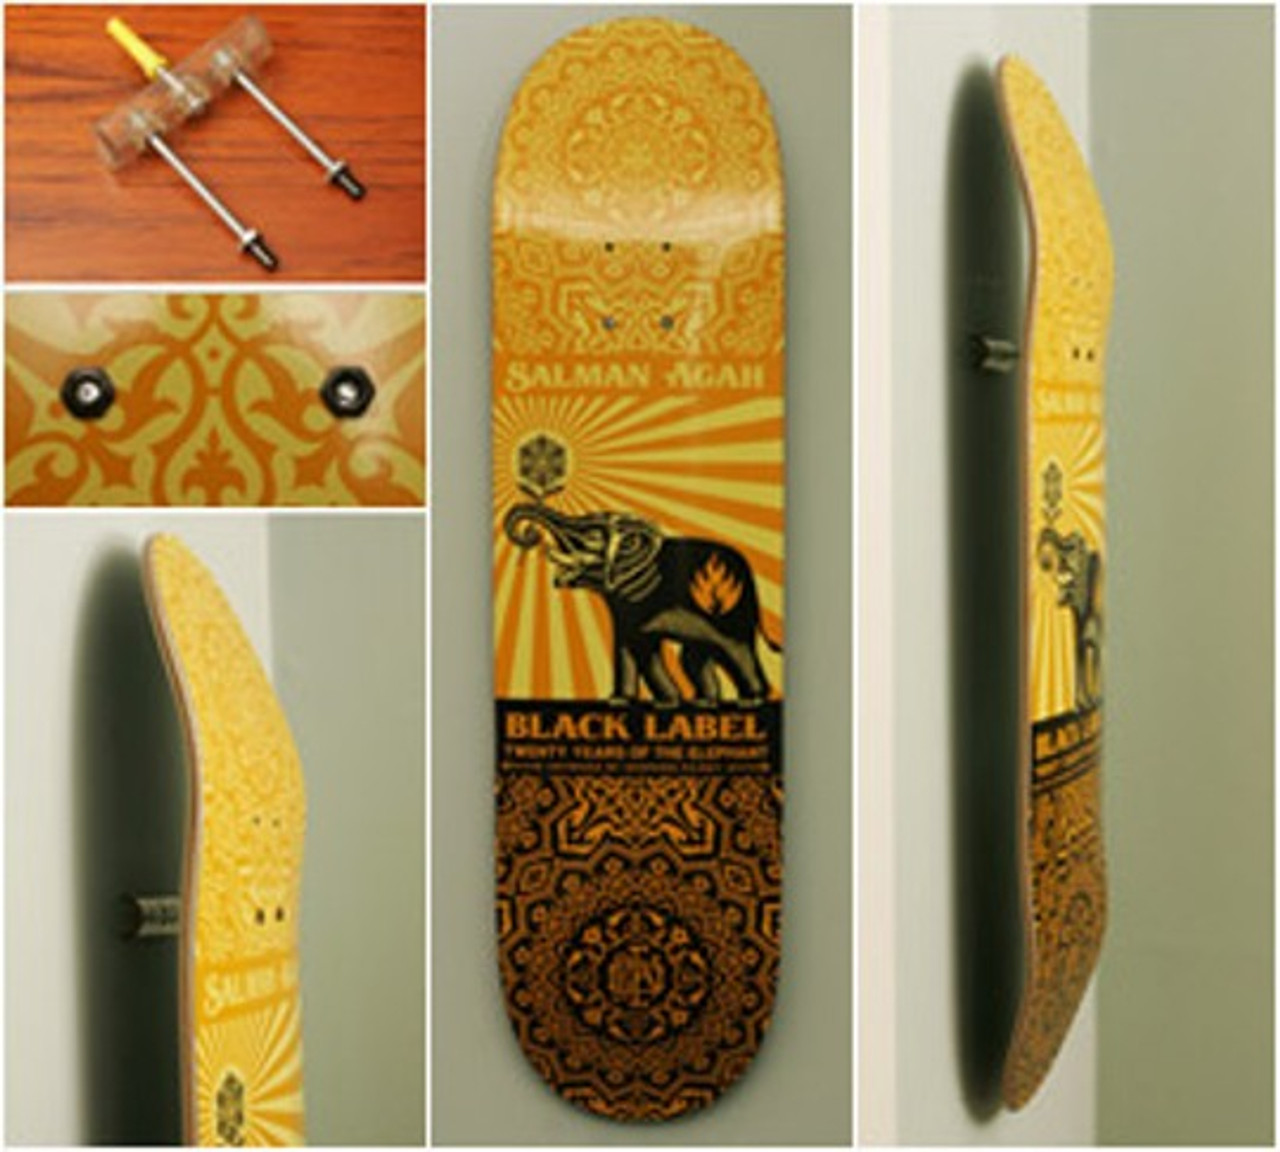 sk8ology deck display